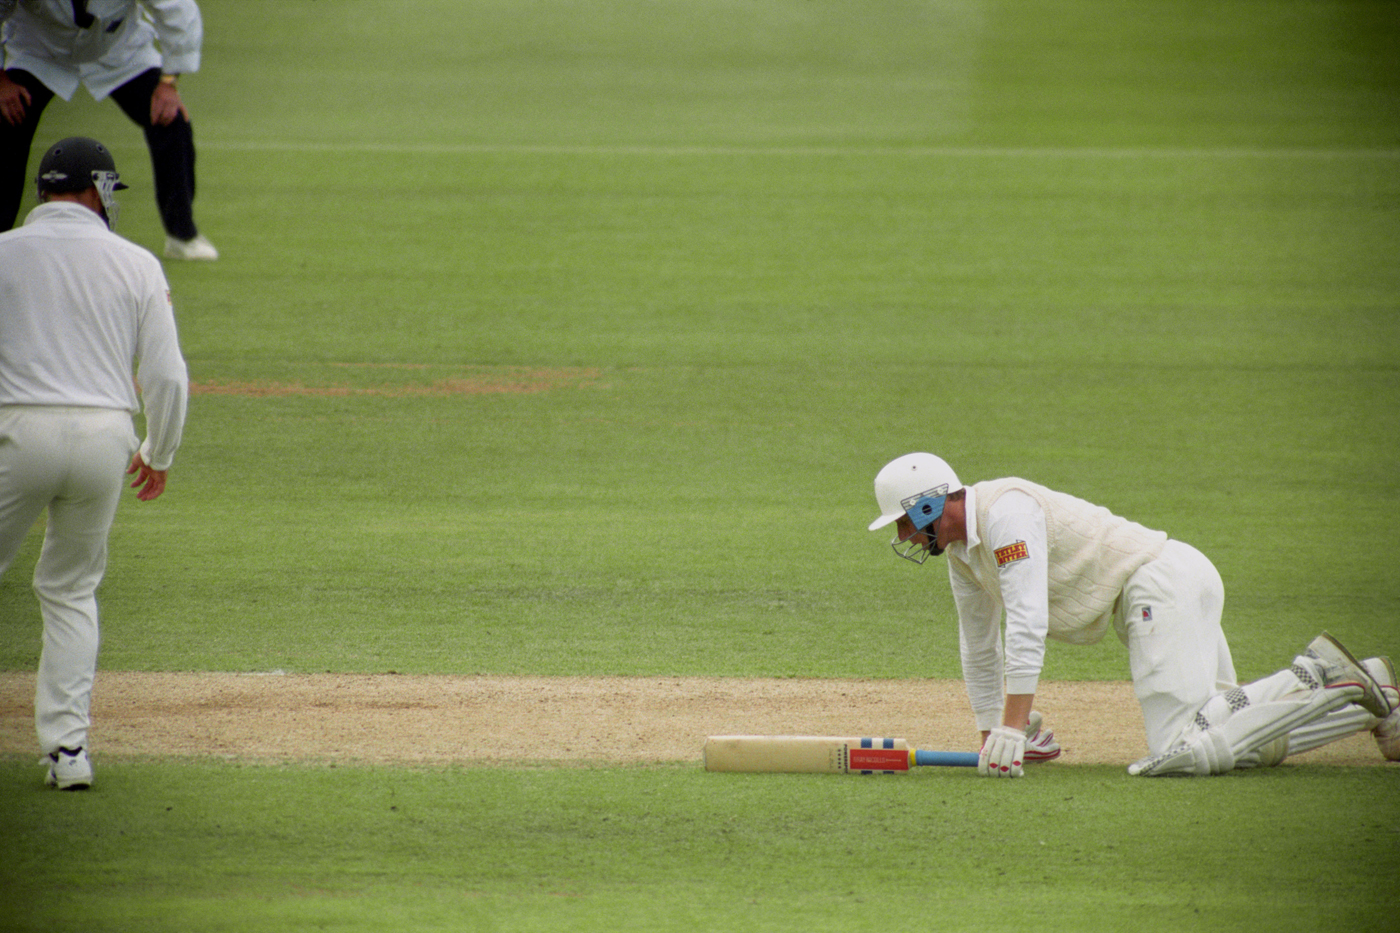 Mike Atherton is on his knees after being run out for 99